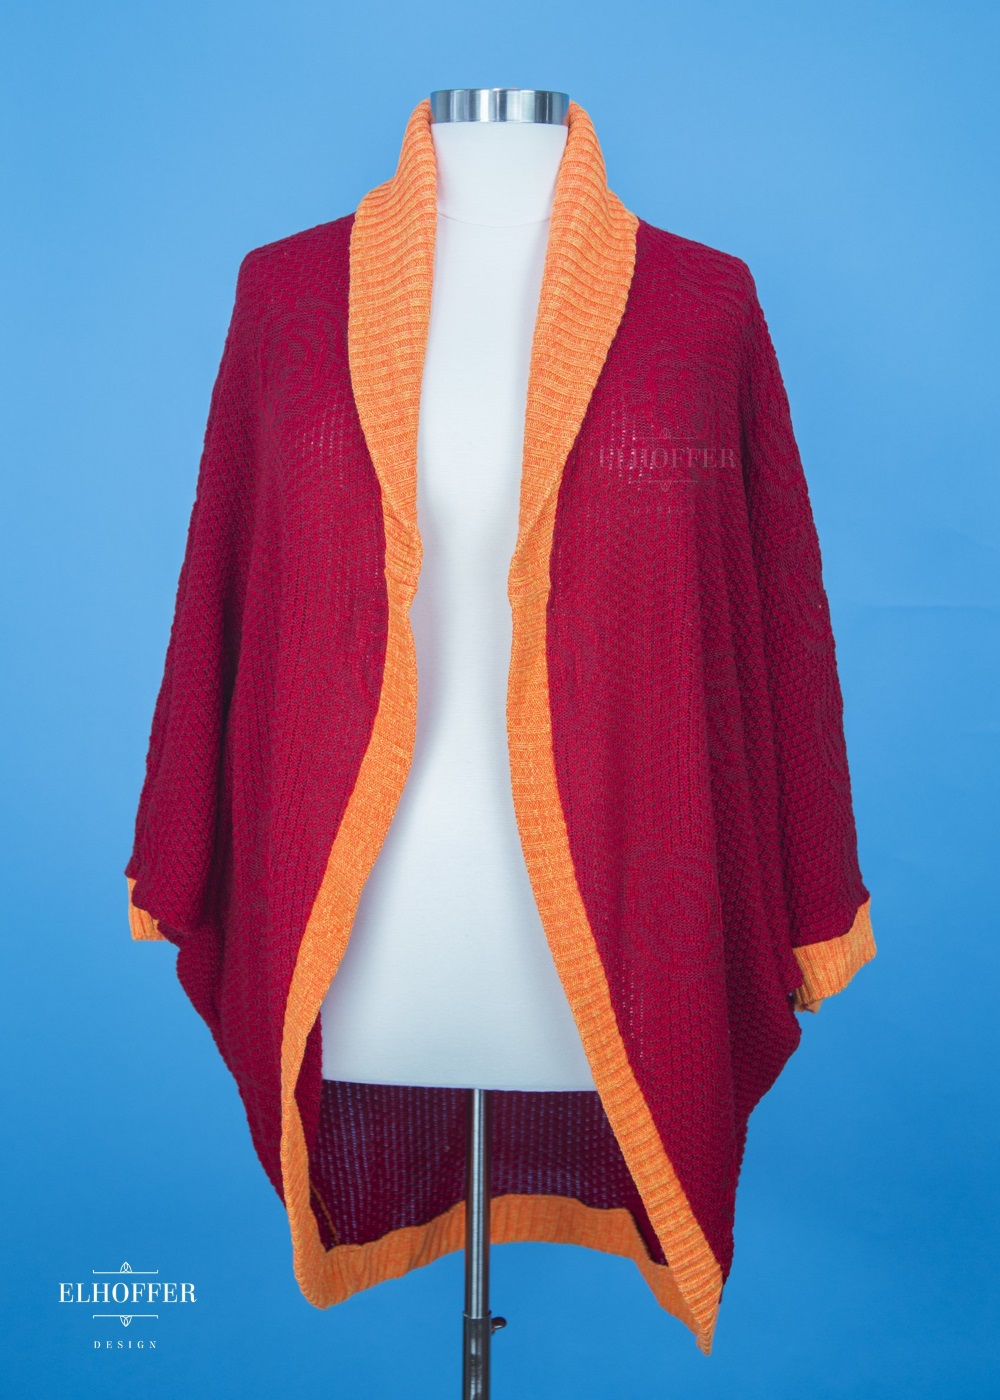 Elhoffer Design - Star Wars Queen Amidala Galactic Appeal Shawl Collar Dolman Cardigan